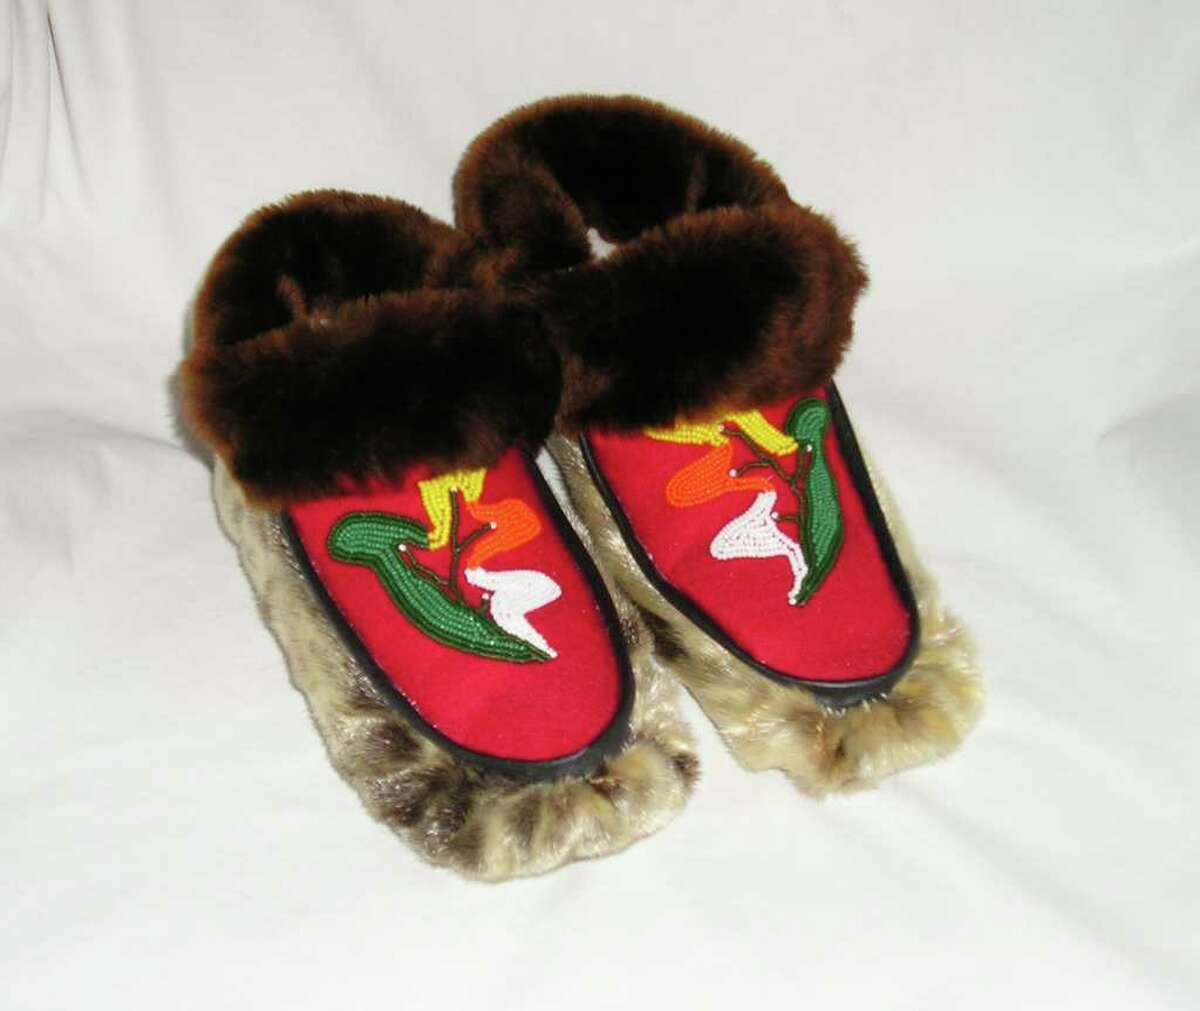 Sealskin moccasins with beaver trim show traditional Tlingit leaf-pattern beading. (Barbara M. Traynor)